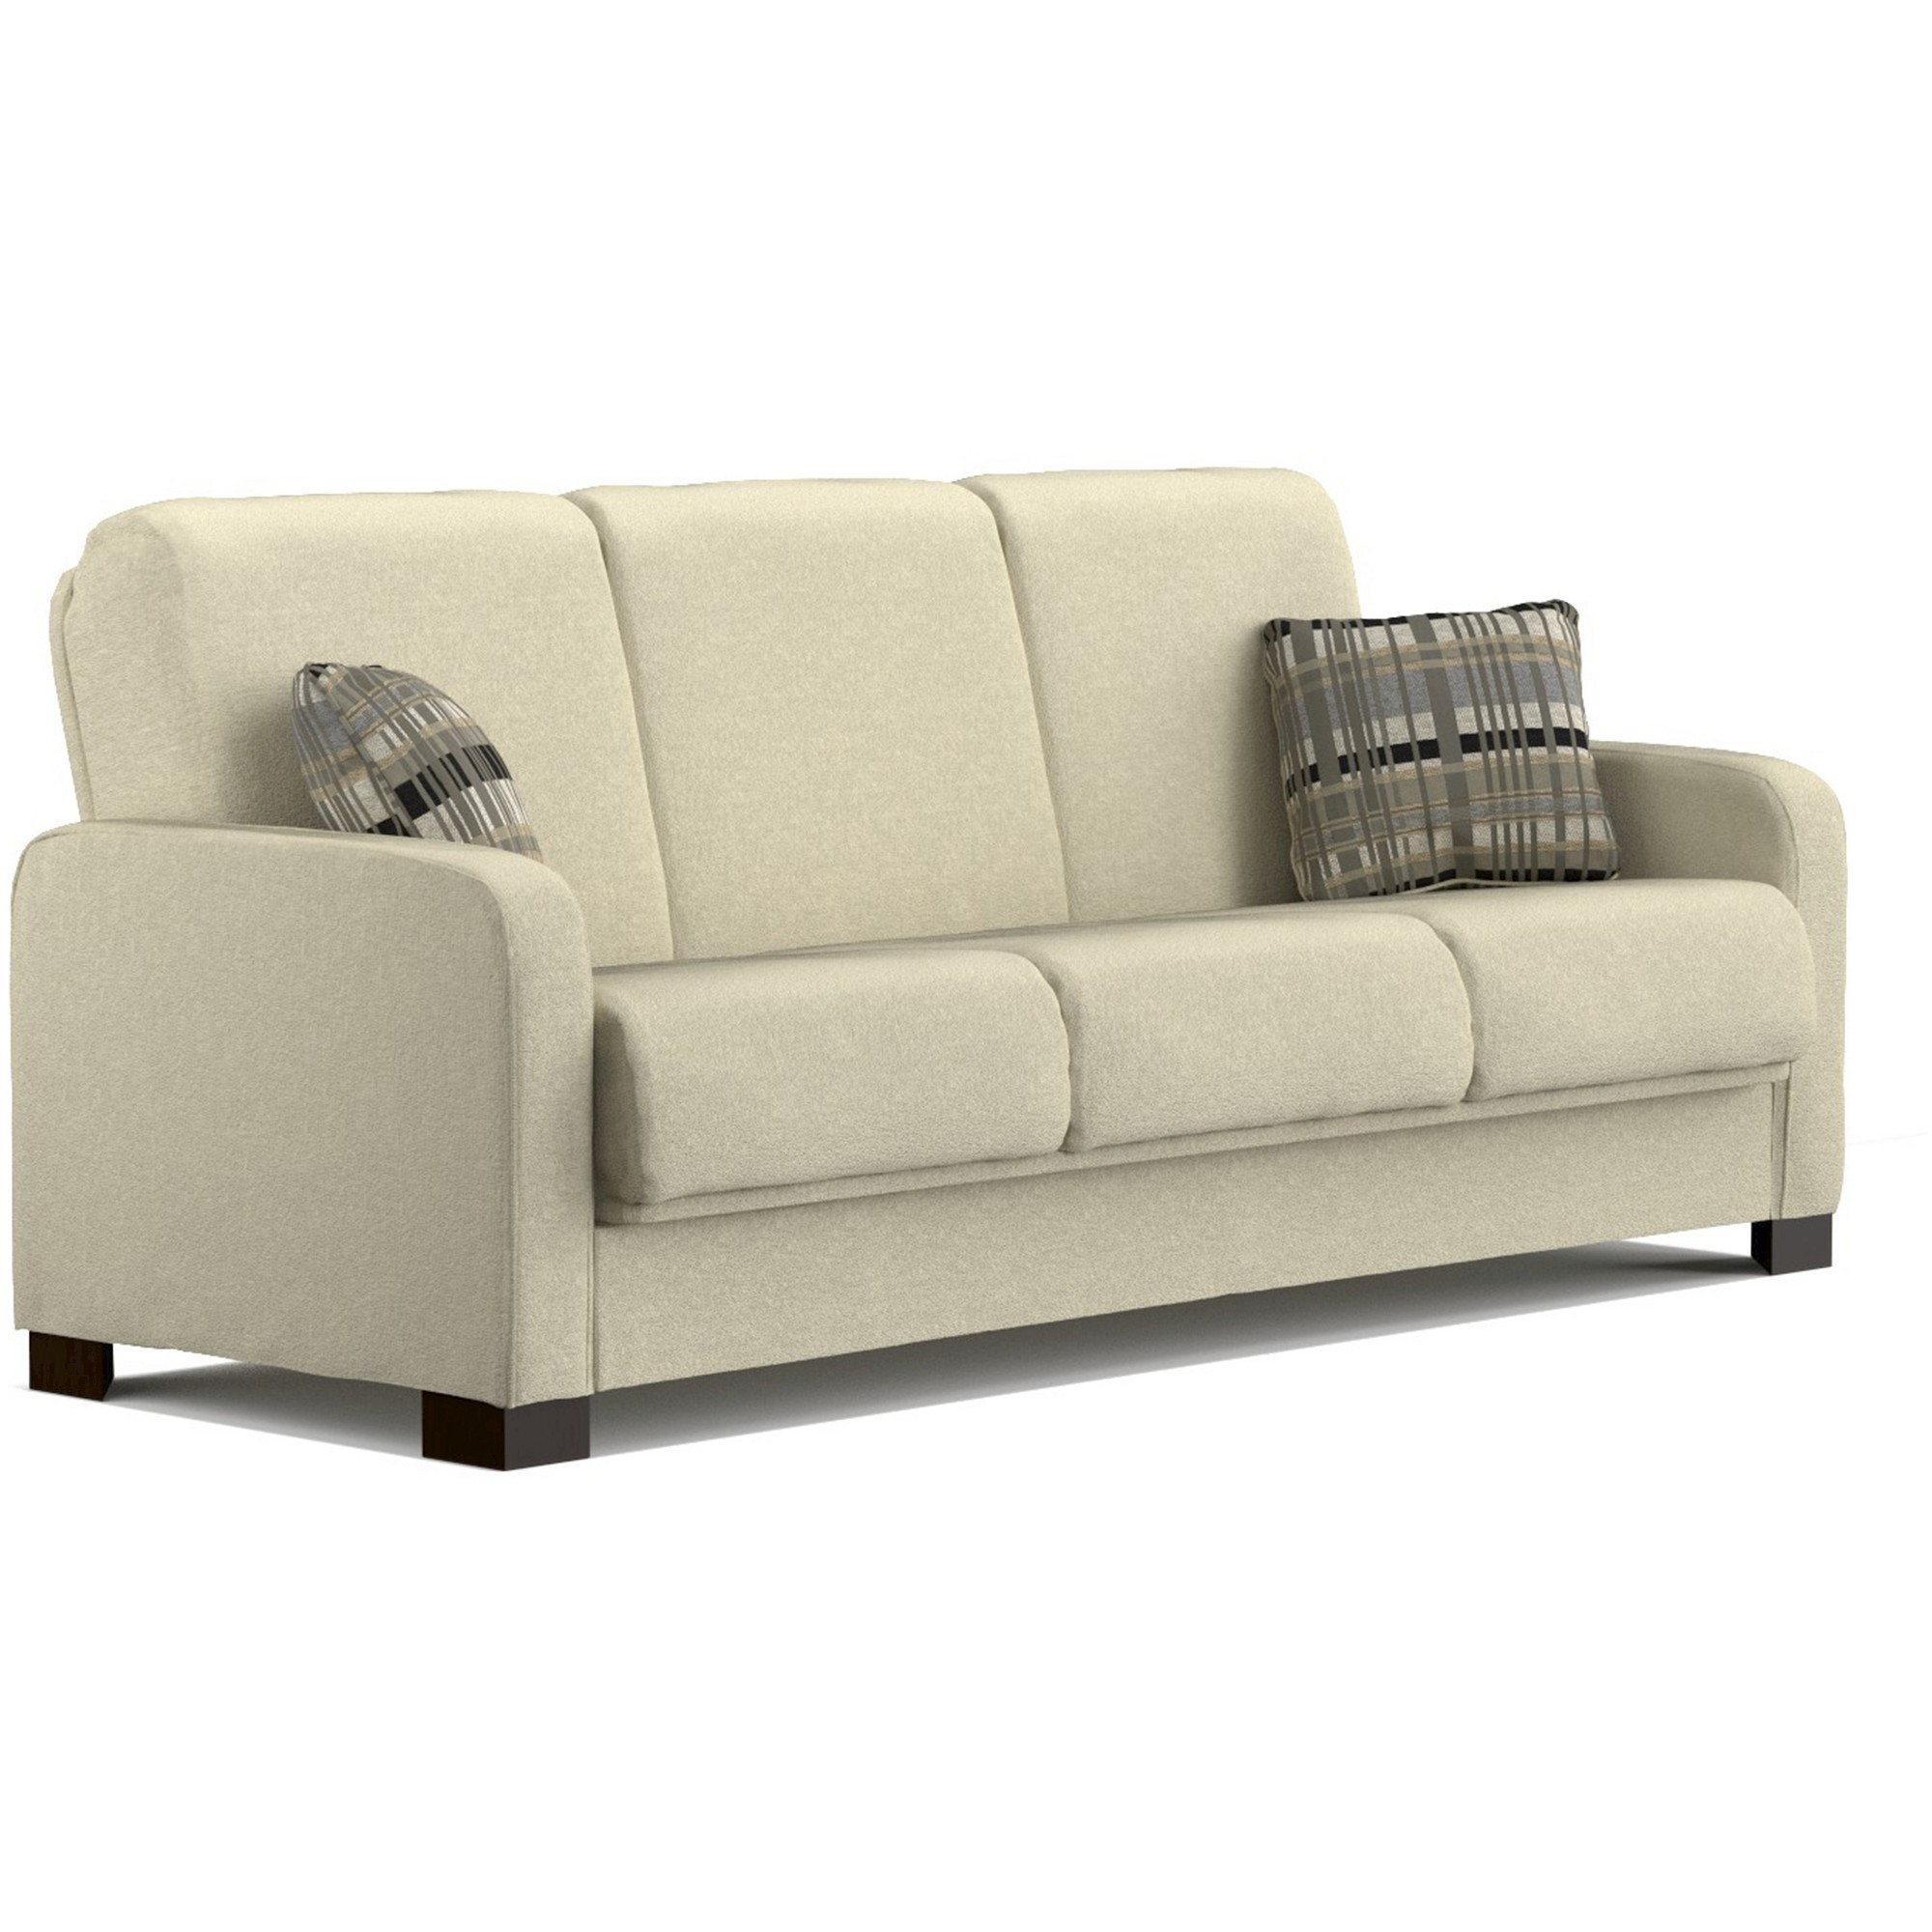 Thora Convert A Couch Ivory Chenille Handy Living Ivory Cumin Modern Sleeper Sofa Couch Futon Sofa